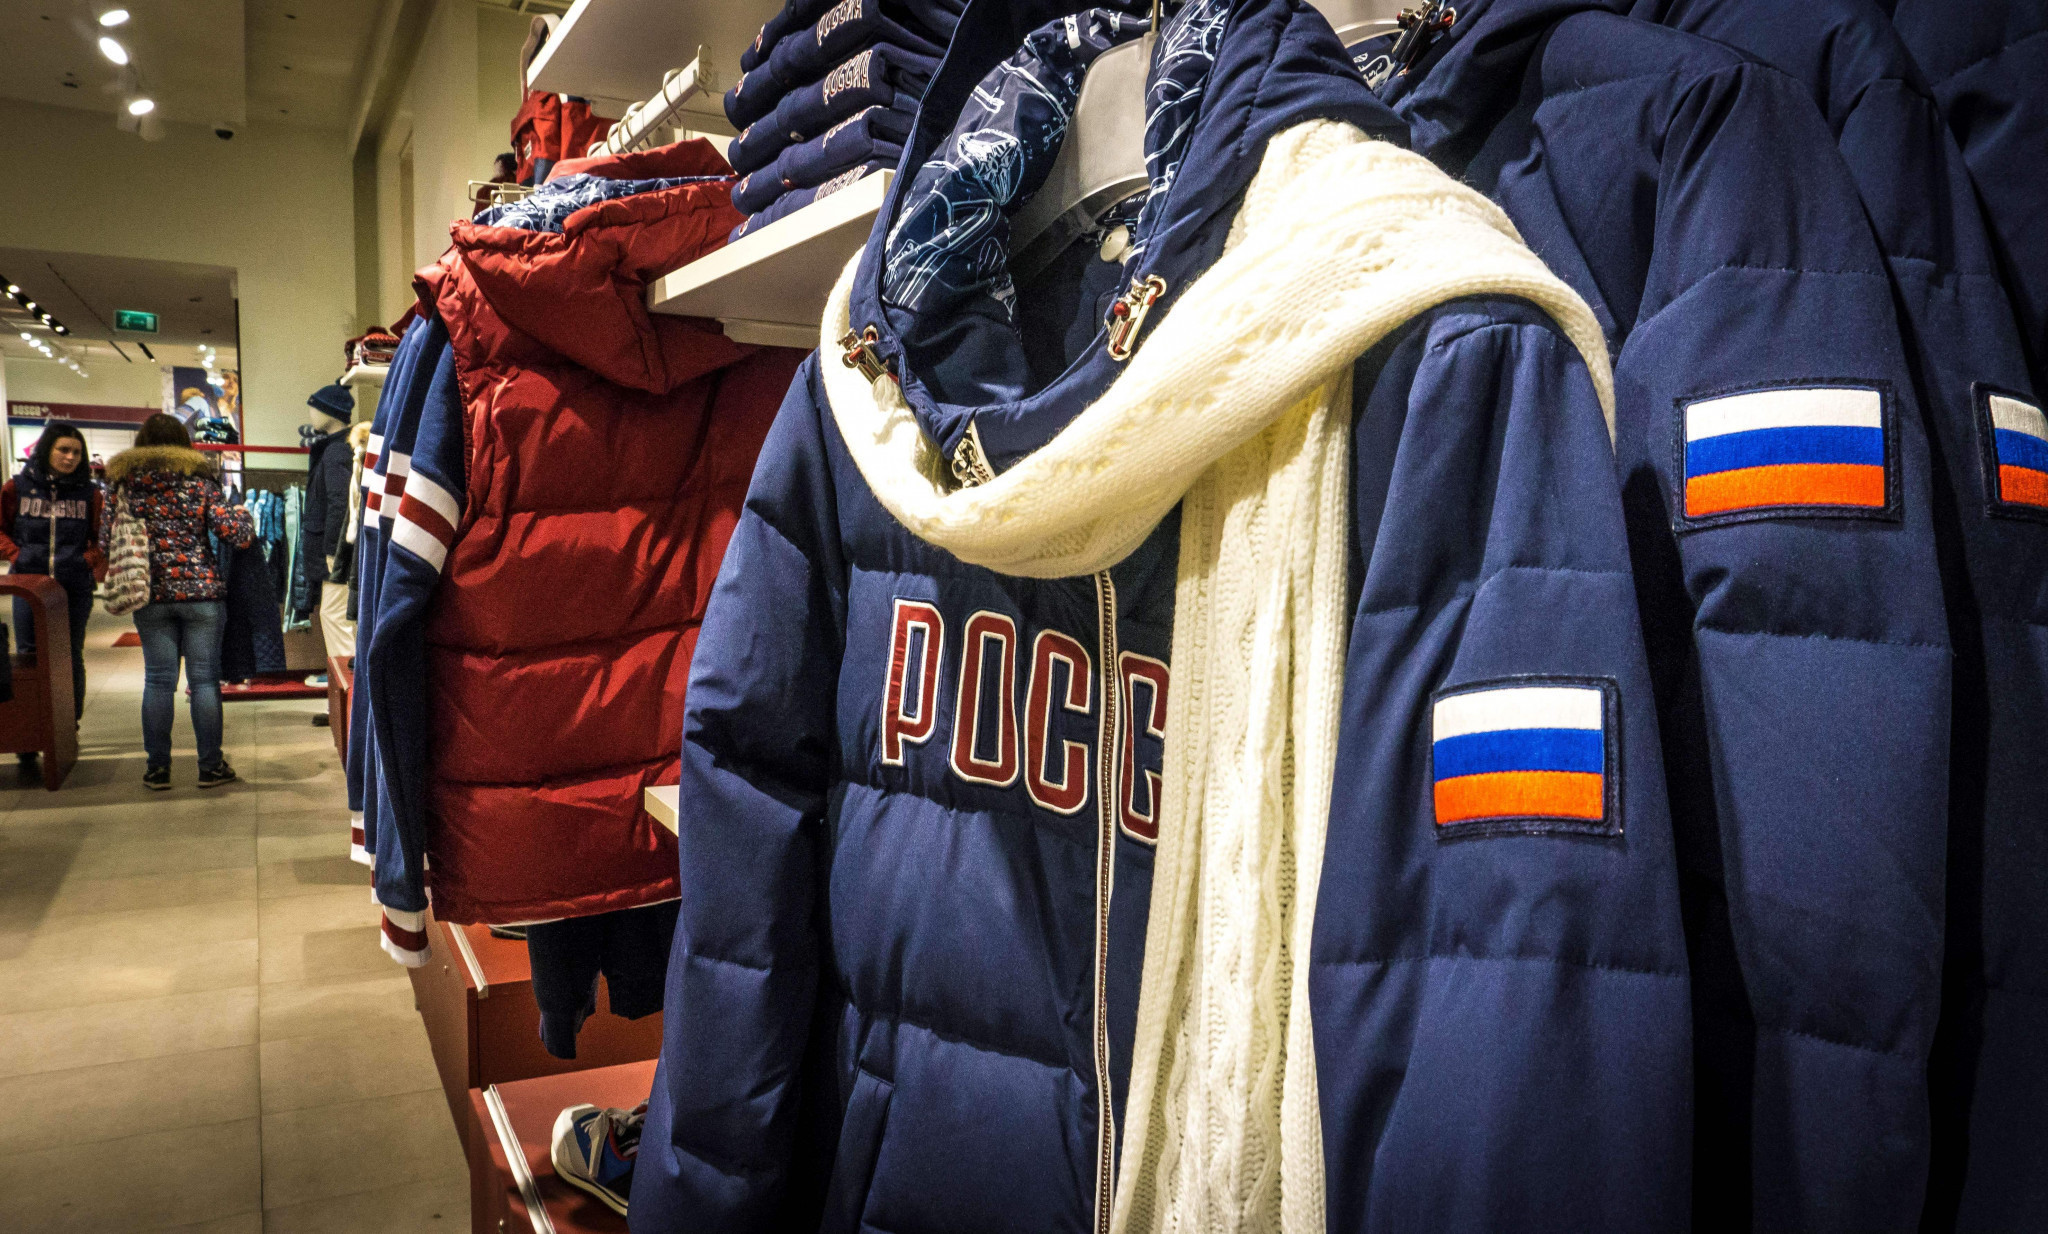 Bosco have been a long-term supplier of uniforms for Russian athletes at the Olympic Games ©Getty Images